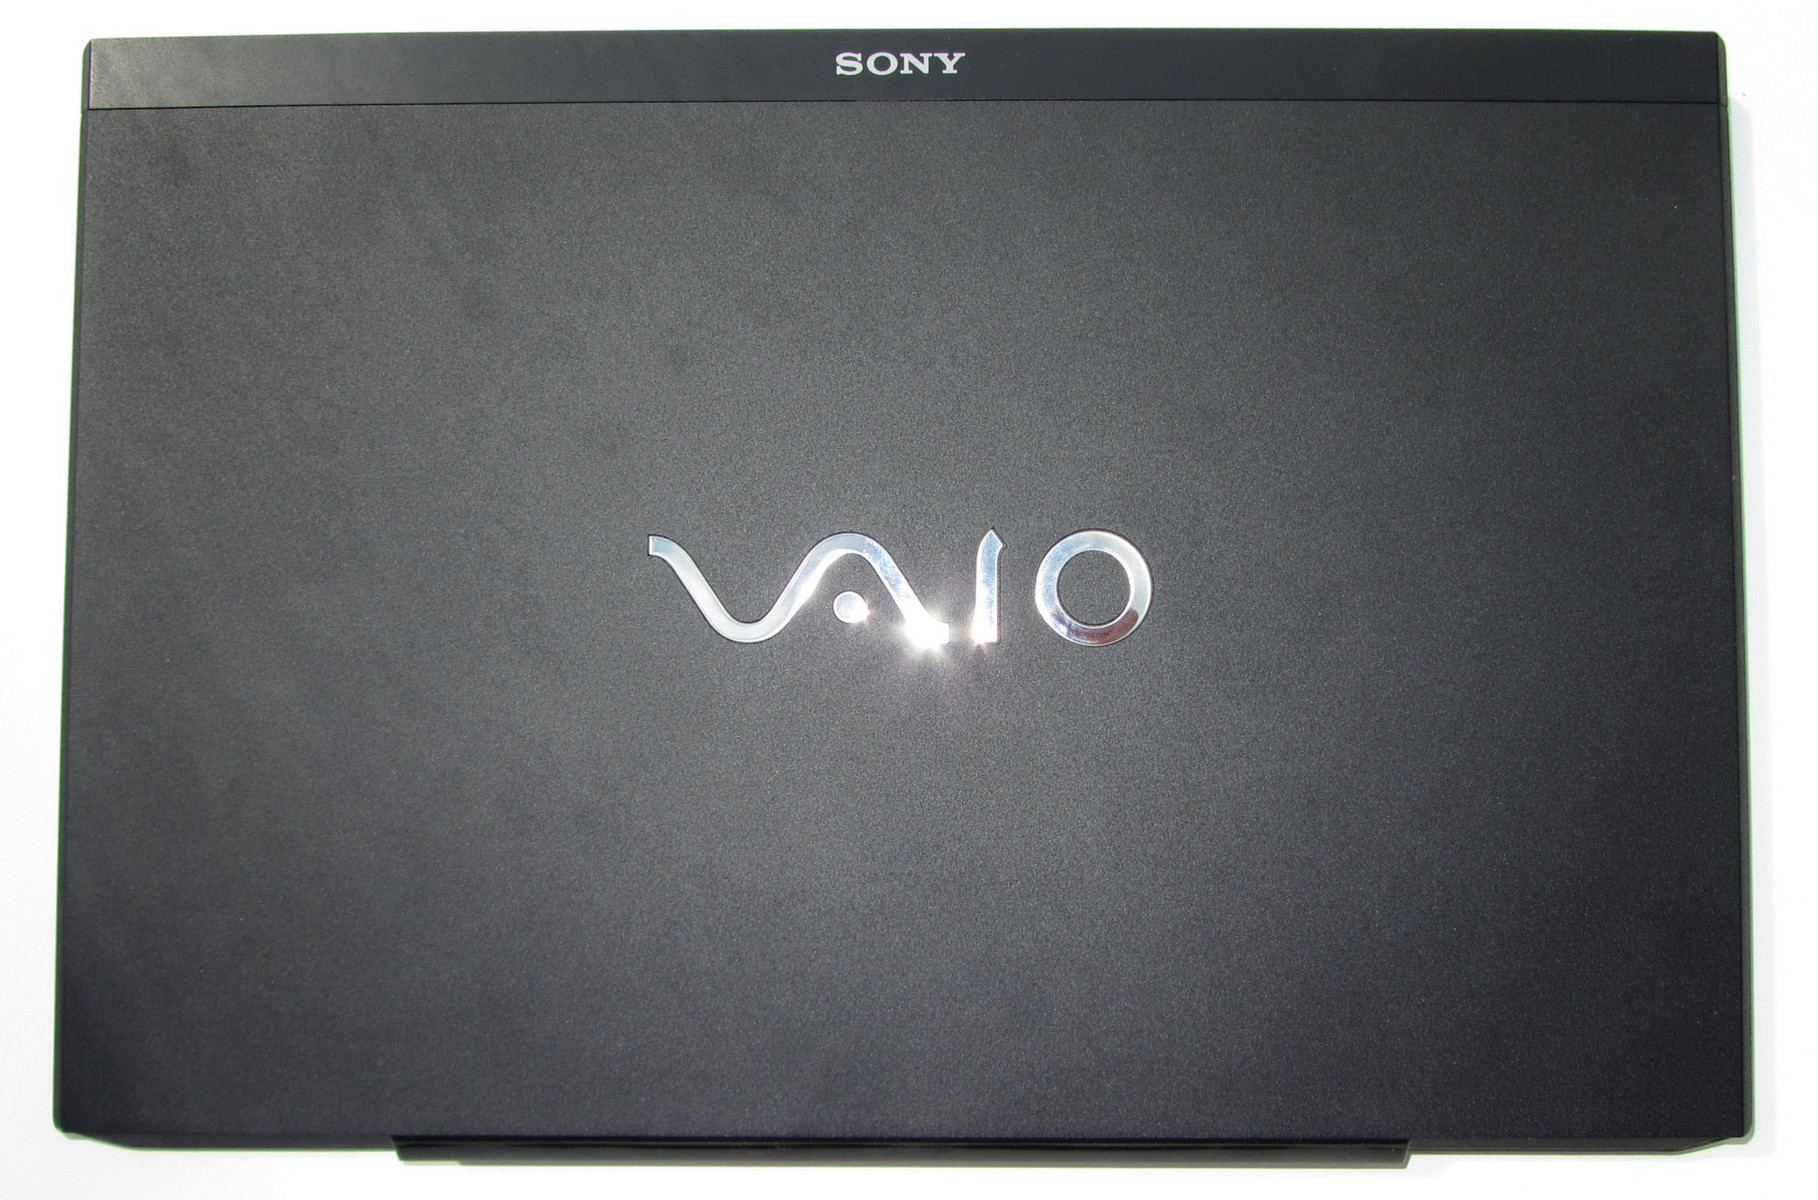 Sony Vaio VPCZ22TGX Huawei Gobi 3000 Modem Windows 8 X64 Driver Download